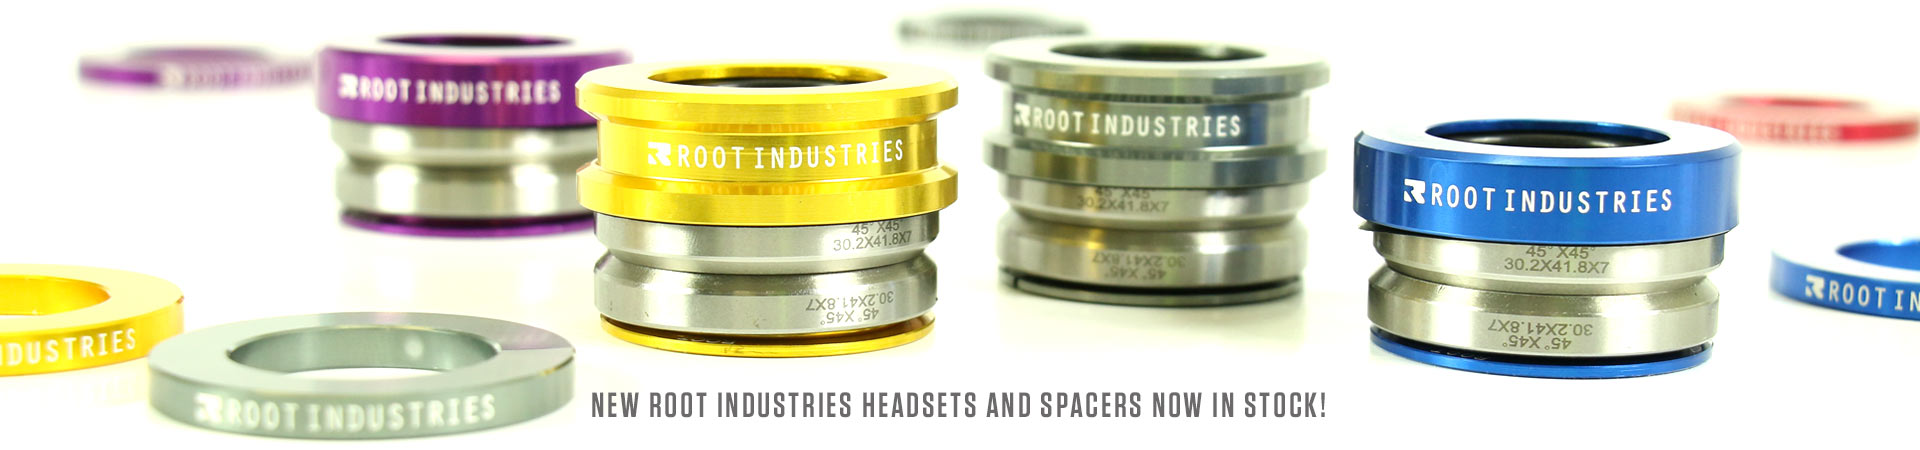 Root Industries AIR Headsets and Spacers NOW IN STOCK!